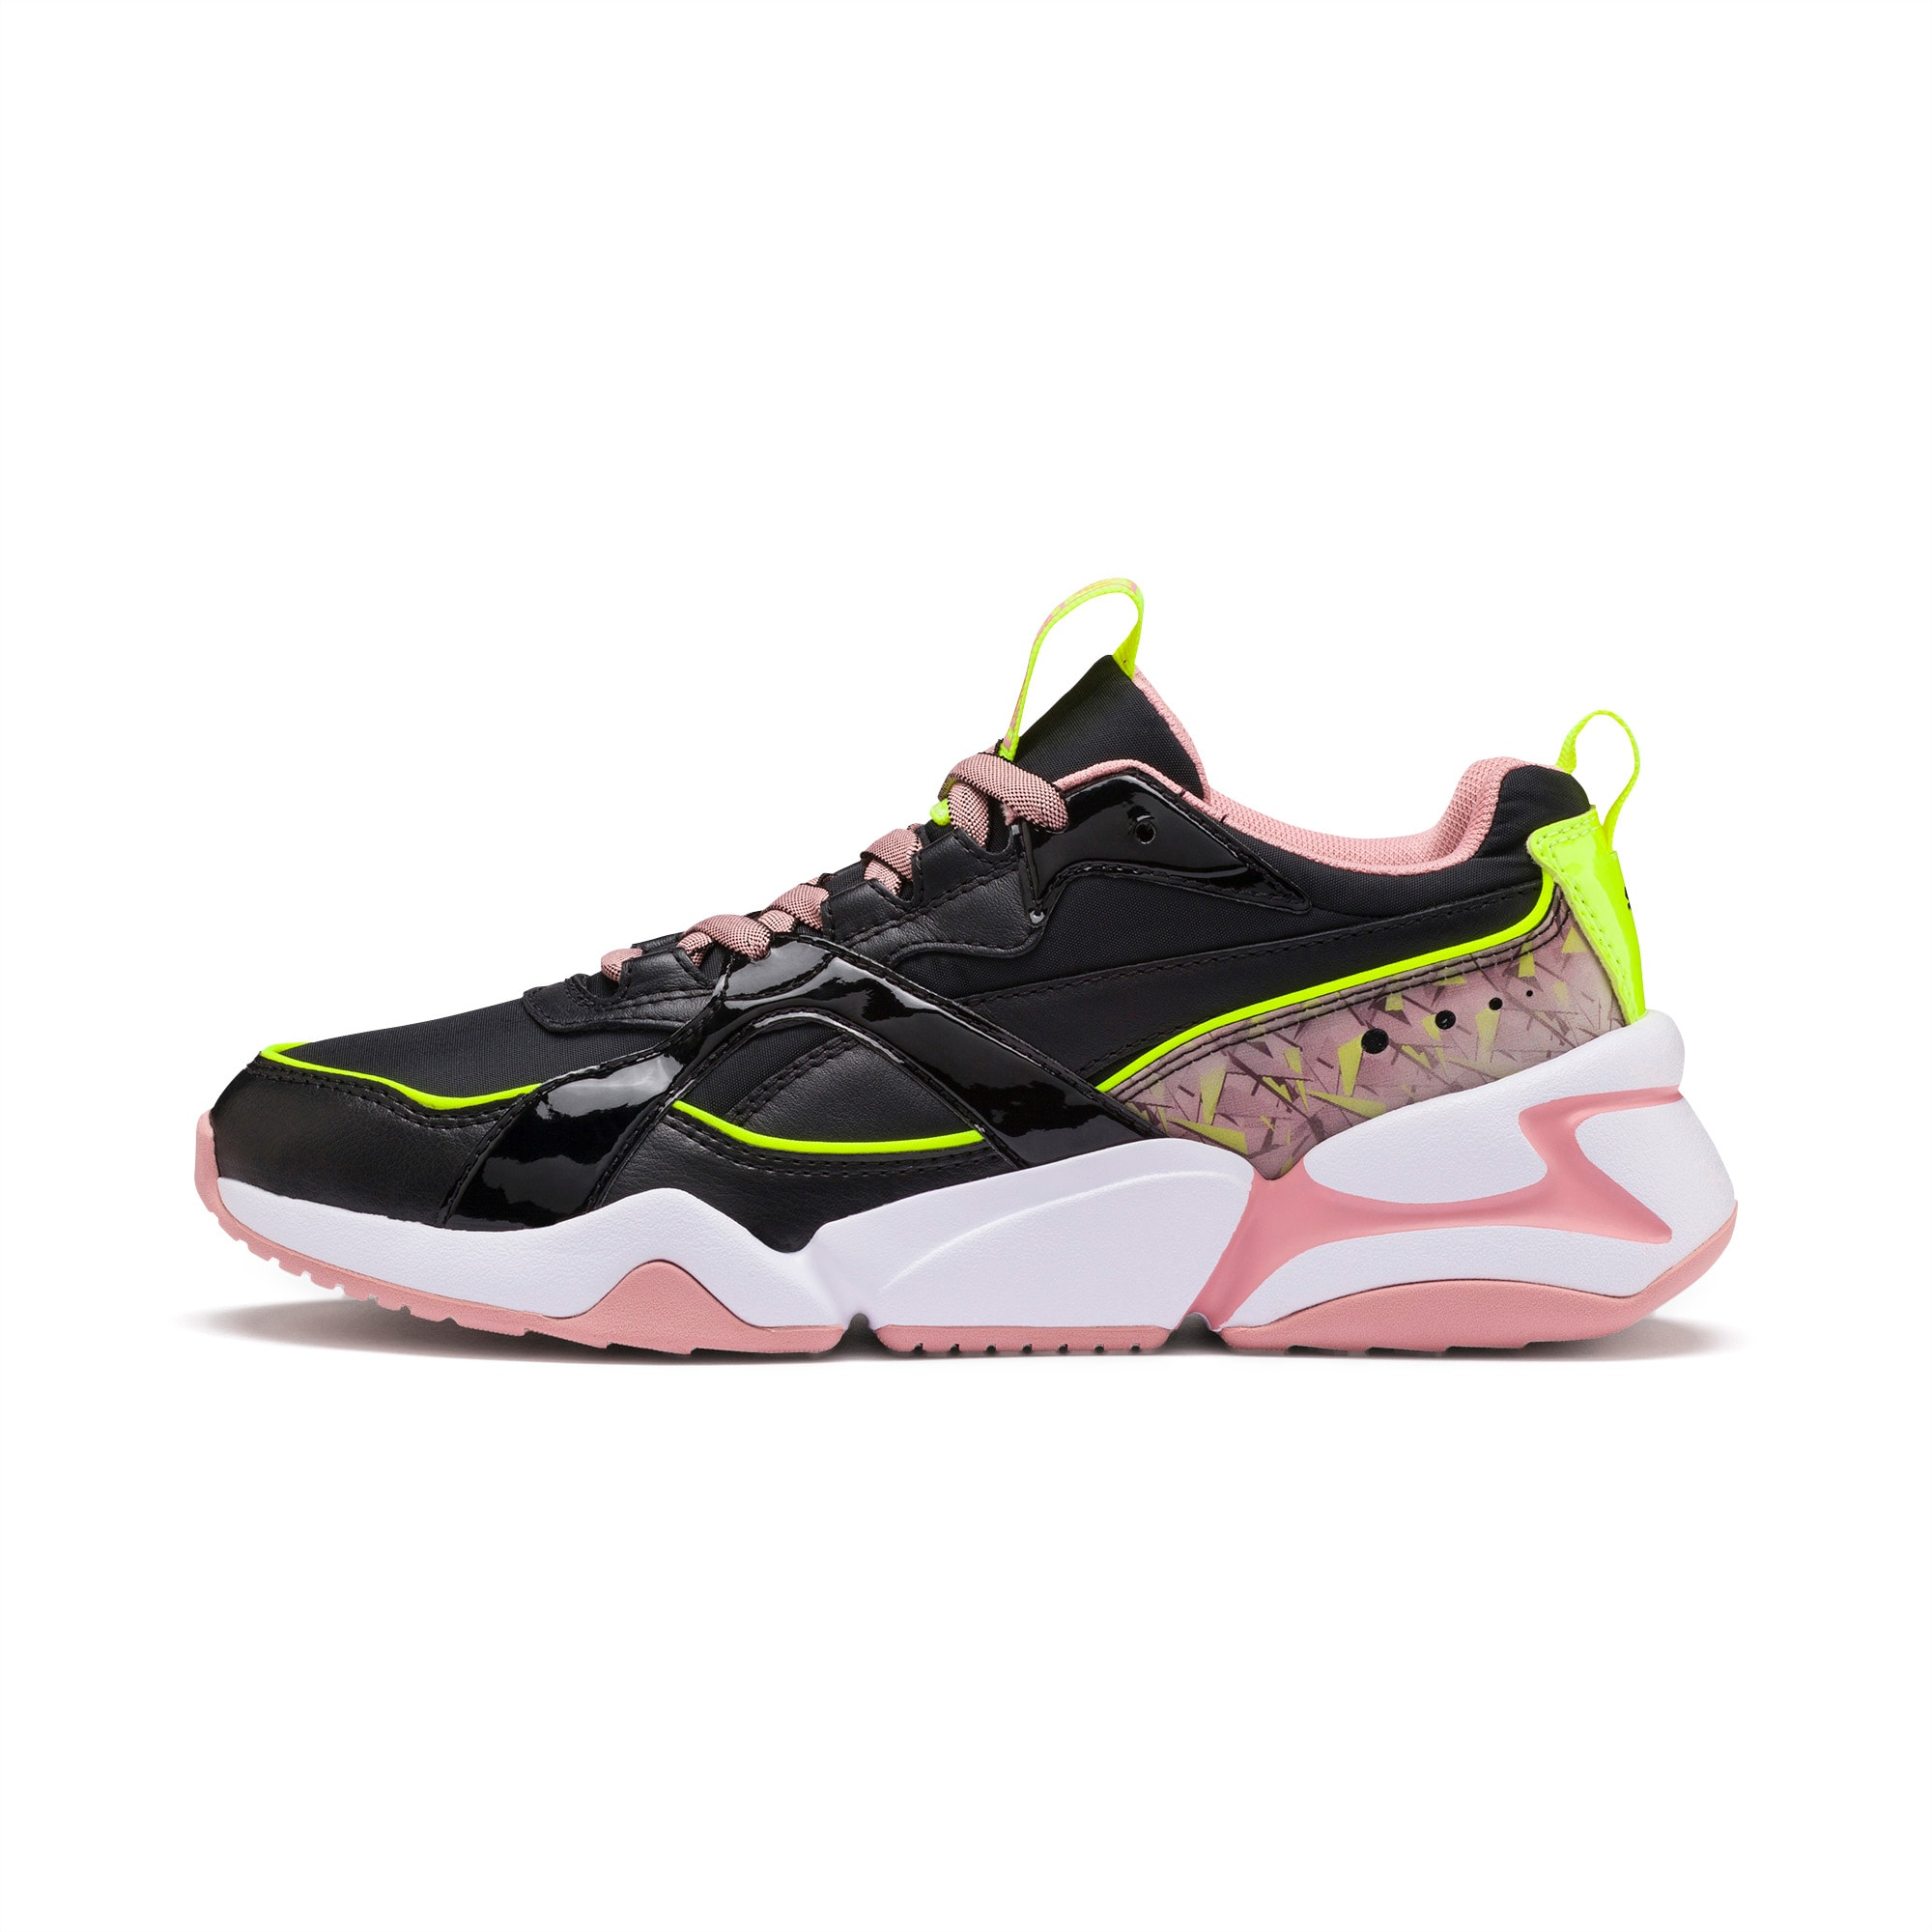 Nova 2 Shift Women's Trainers